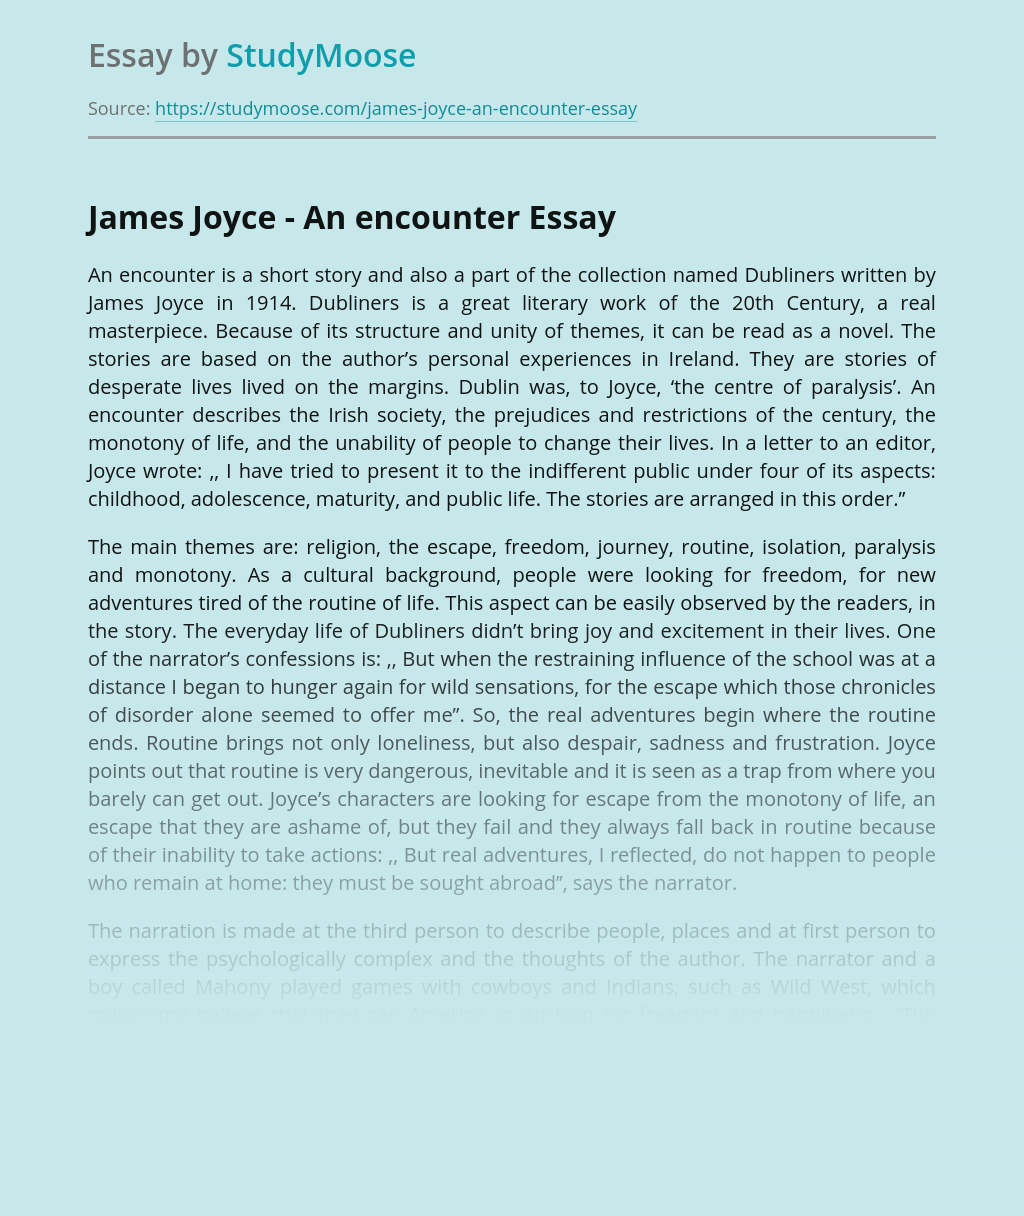 James Joyce - An encounter